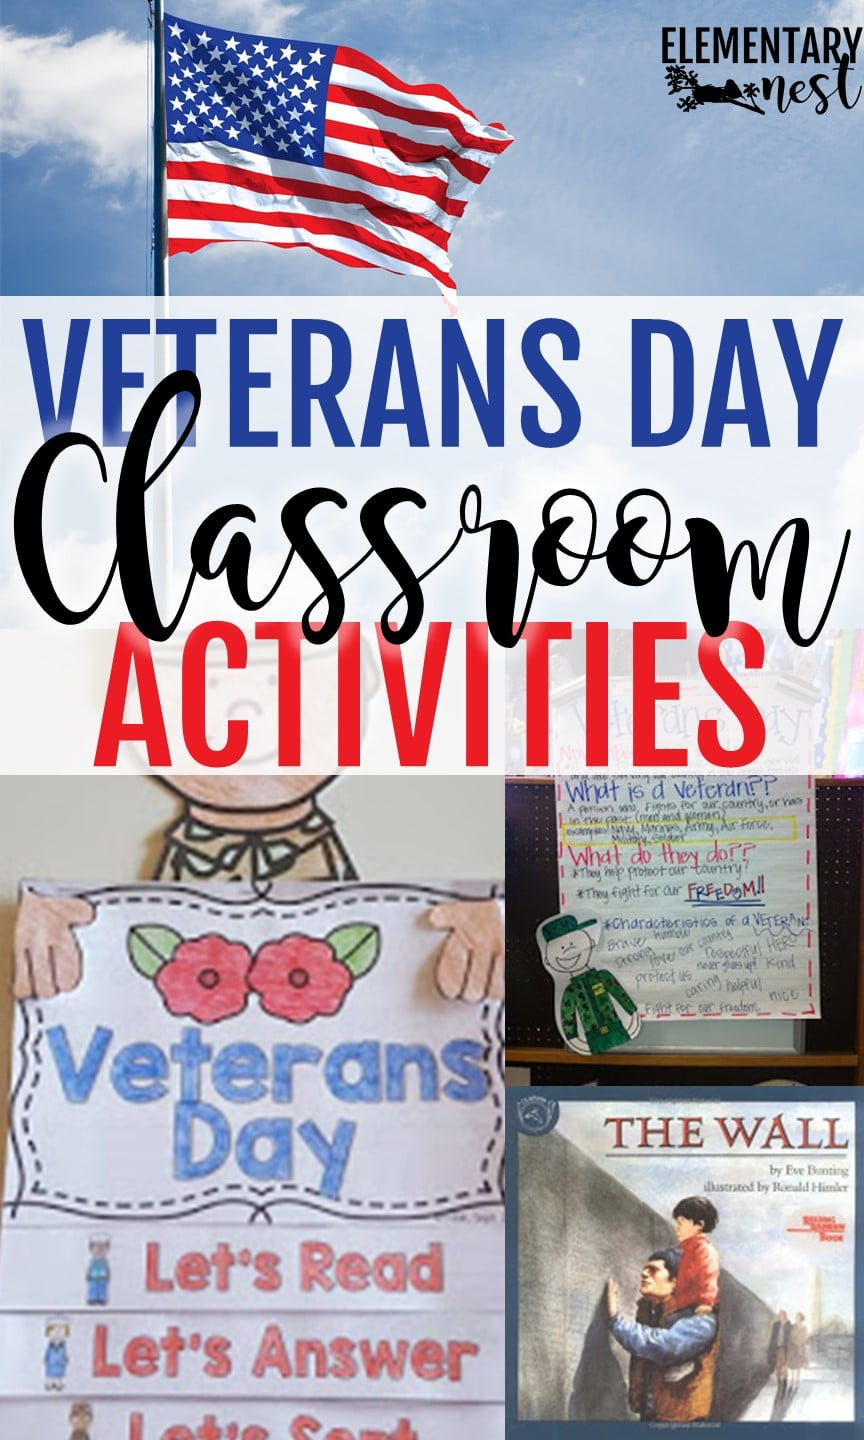 Veterans Day Activities For Elementary Students Elementary Nest